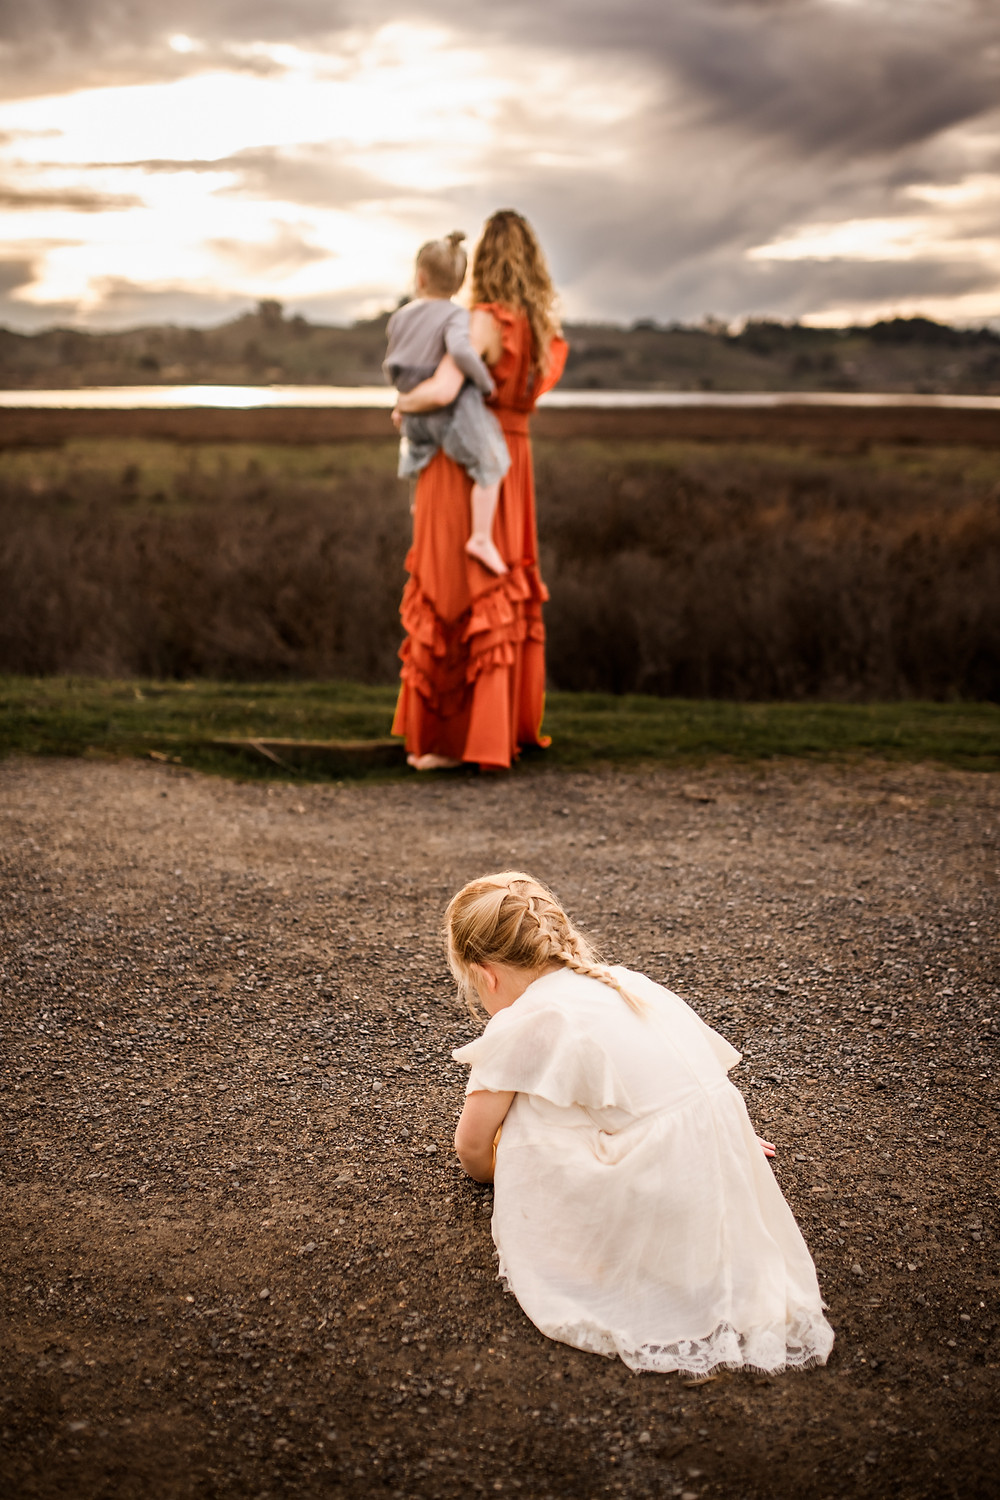 big sister playing in the dirt with mom and baby sister in the background, family photographer for Sonoma County, Diana Jex Photography